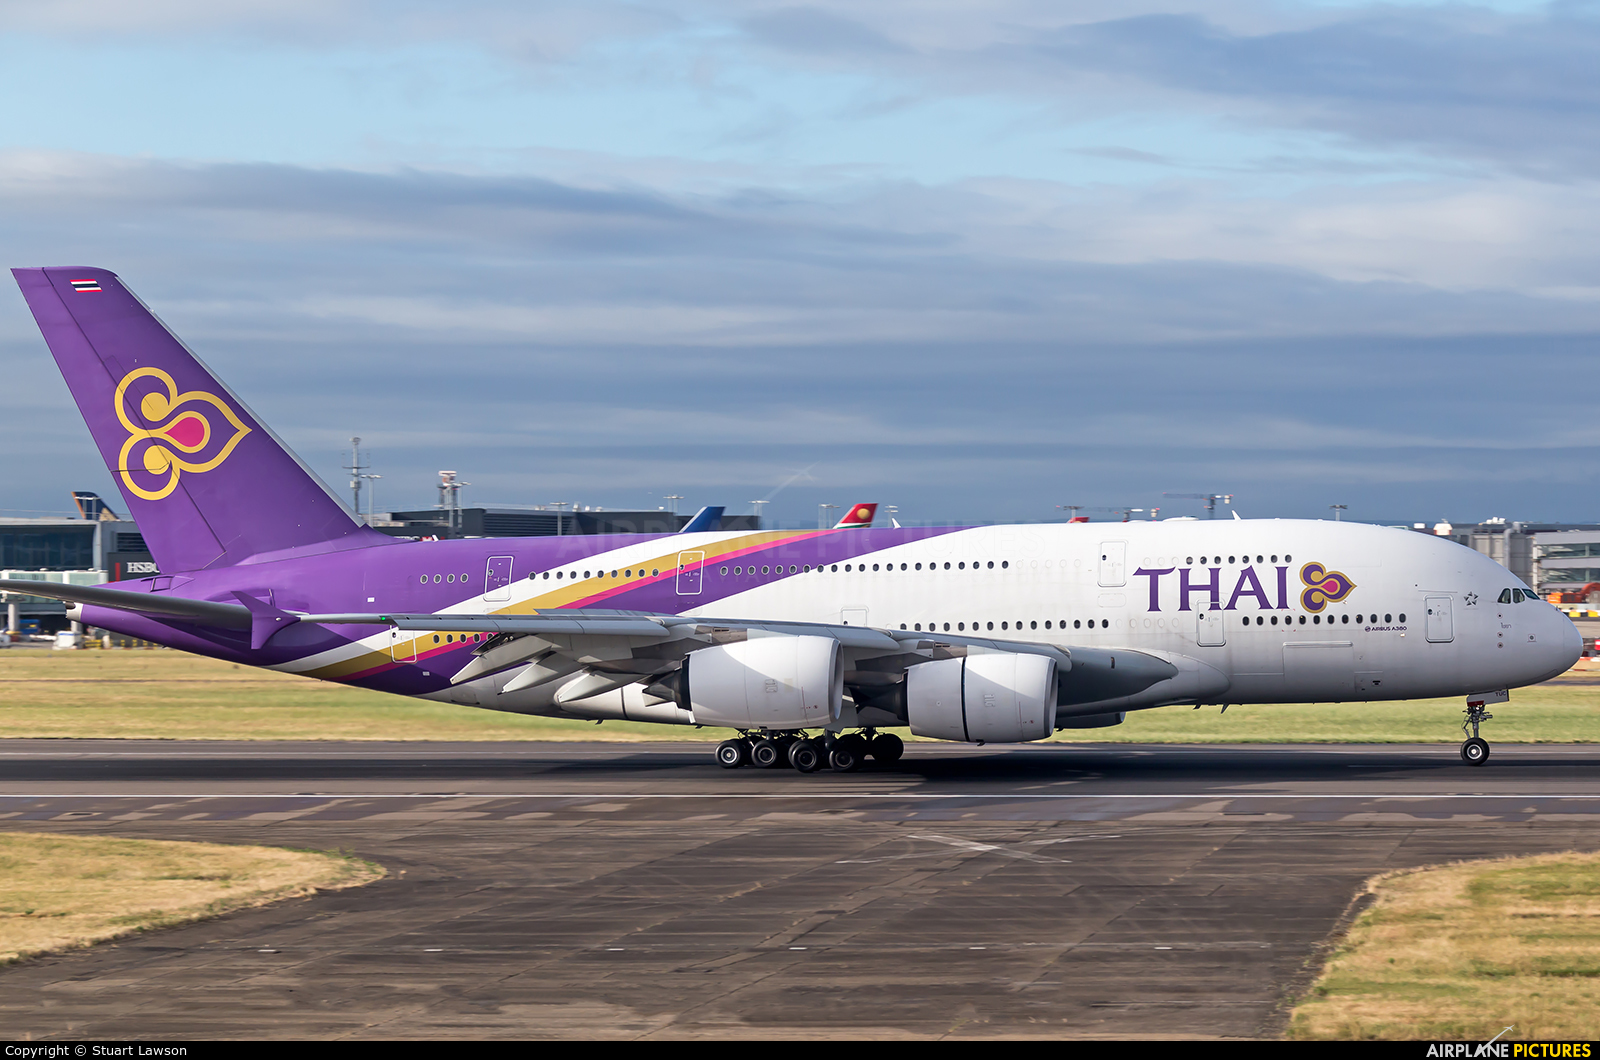 Thai Airways HS-TUC aircraft at London - Heathrow